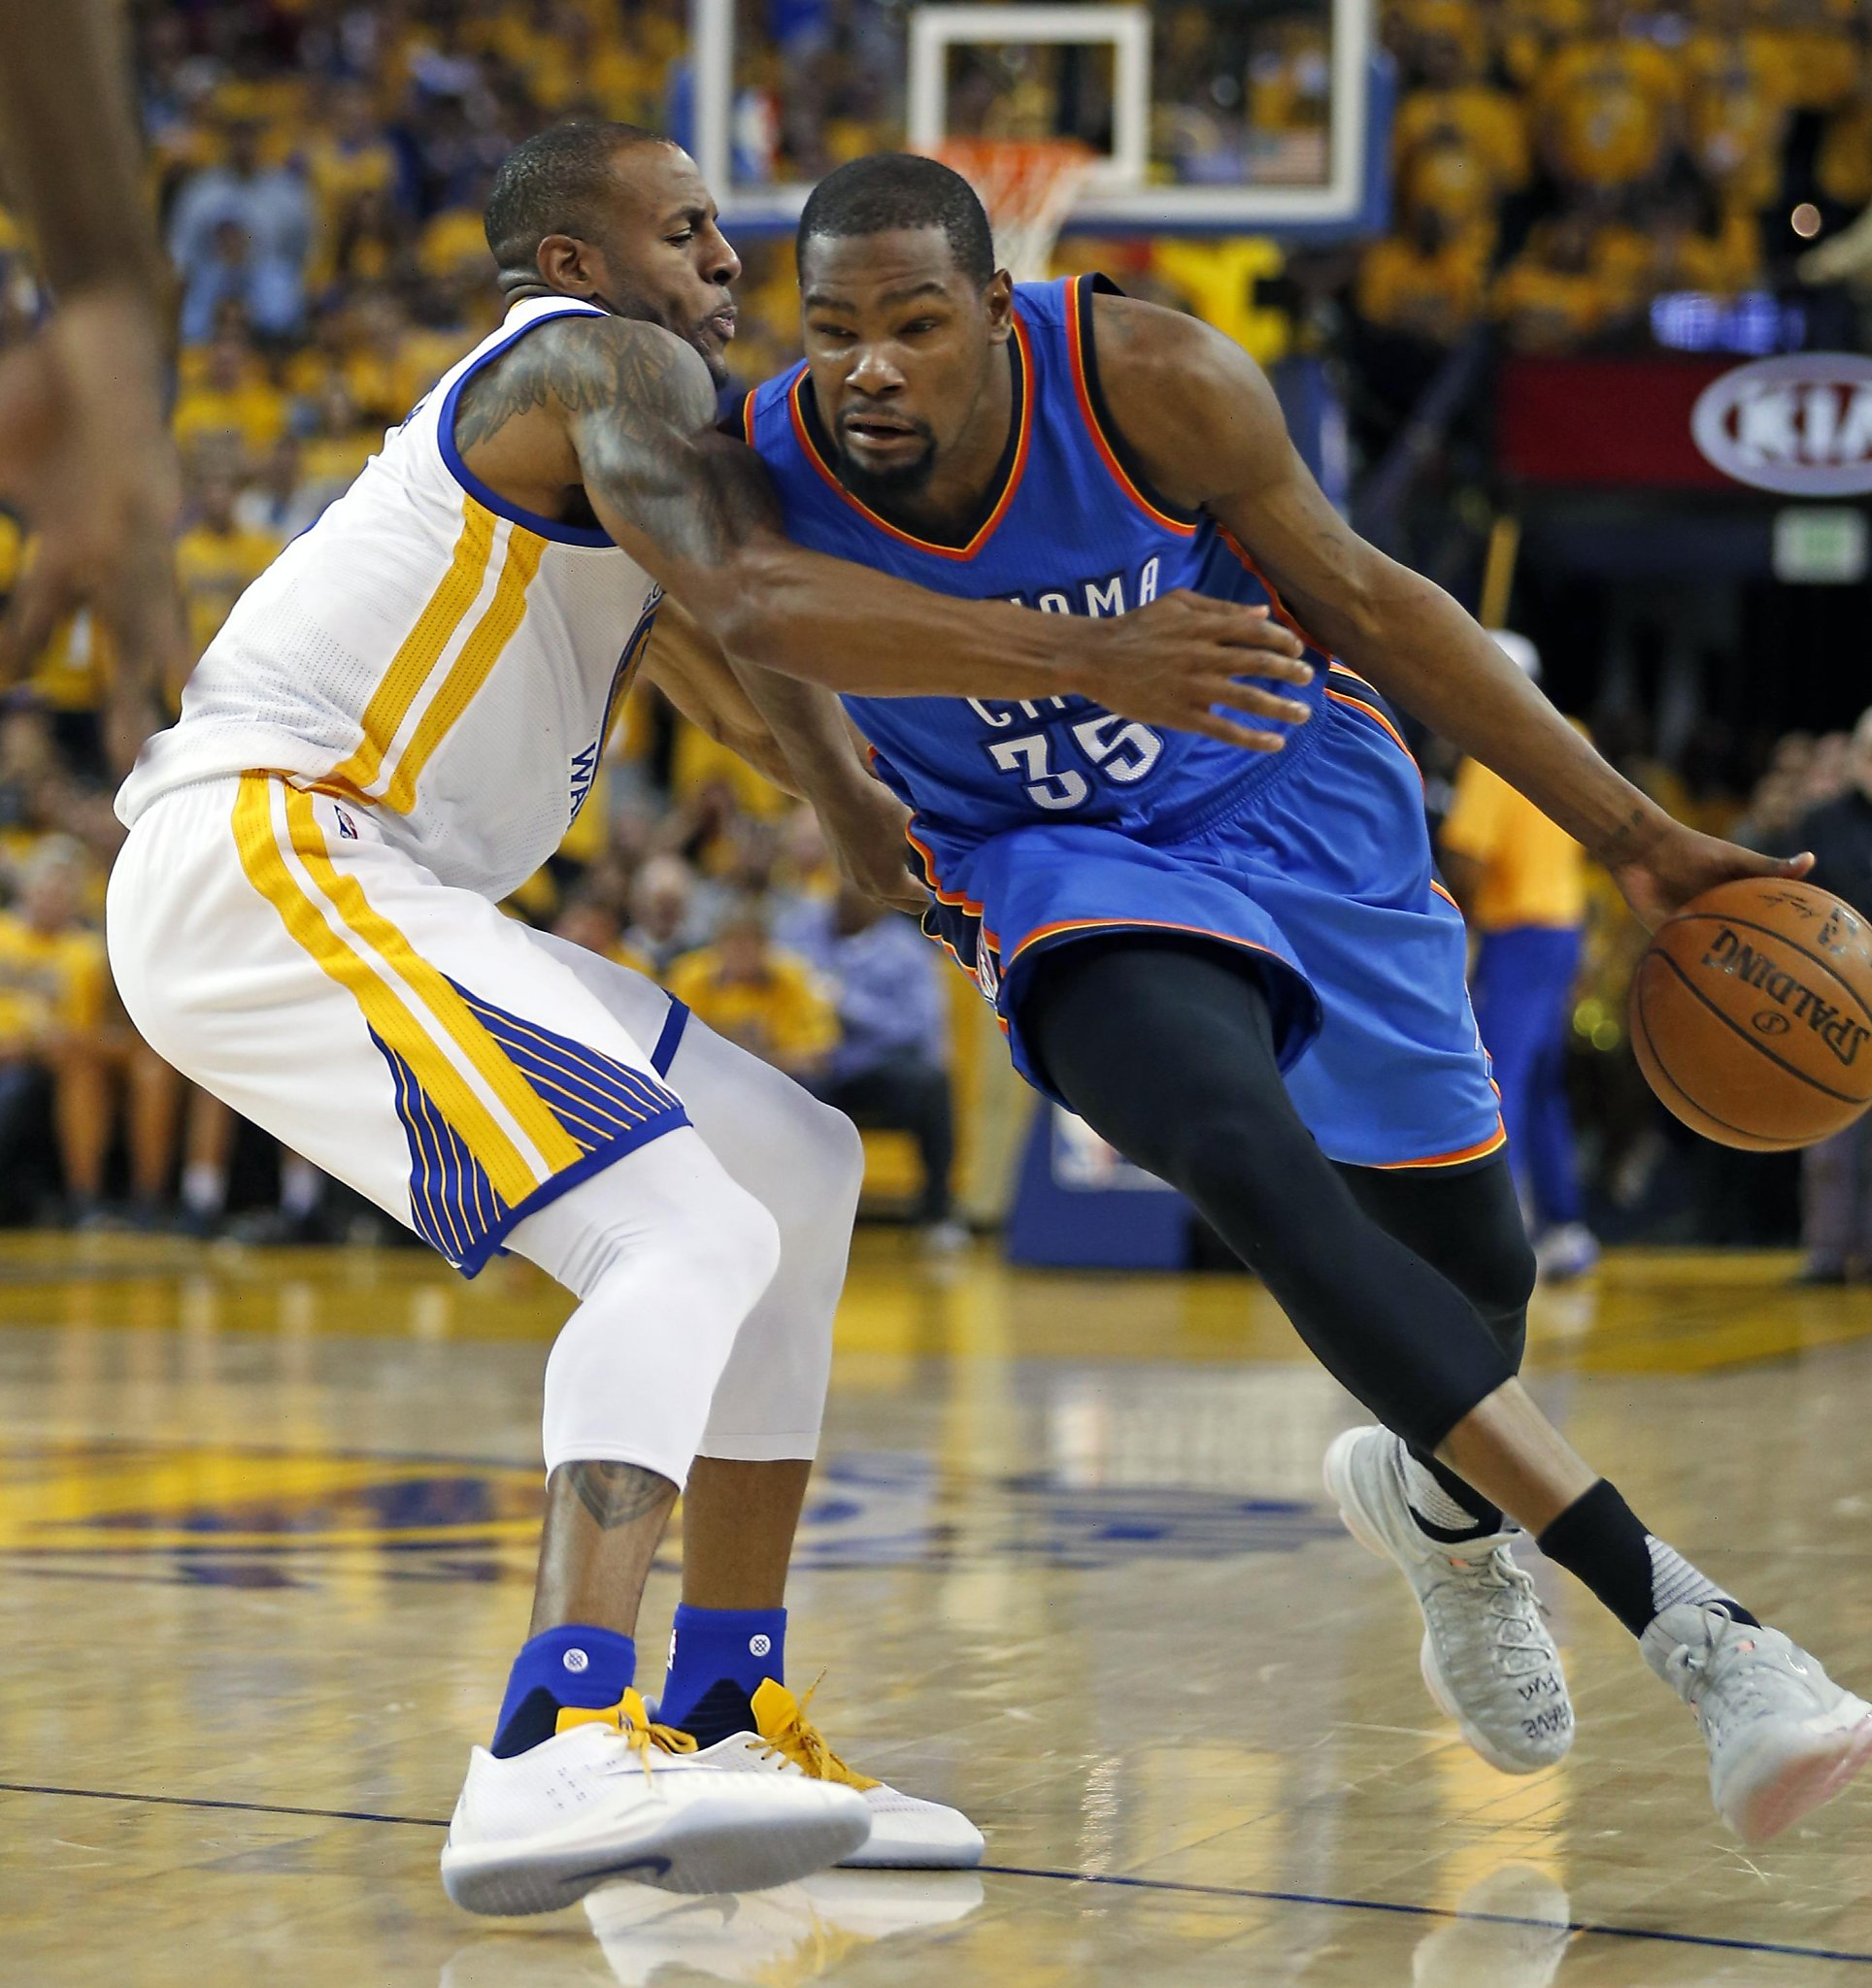 new arrivals 7ae9e e1103 Kevin Durant, Russell Westbrook have big games, but Thunder fall - SFGate